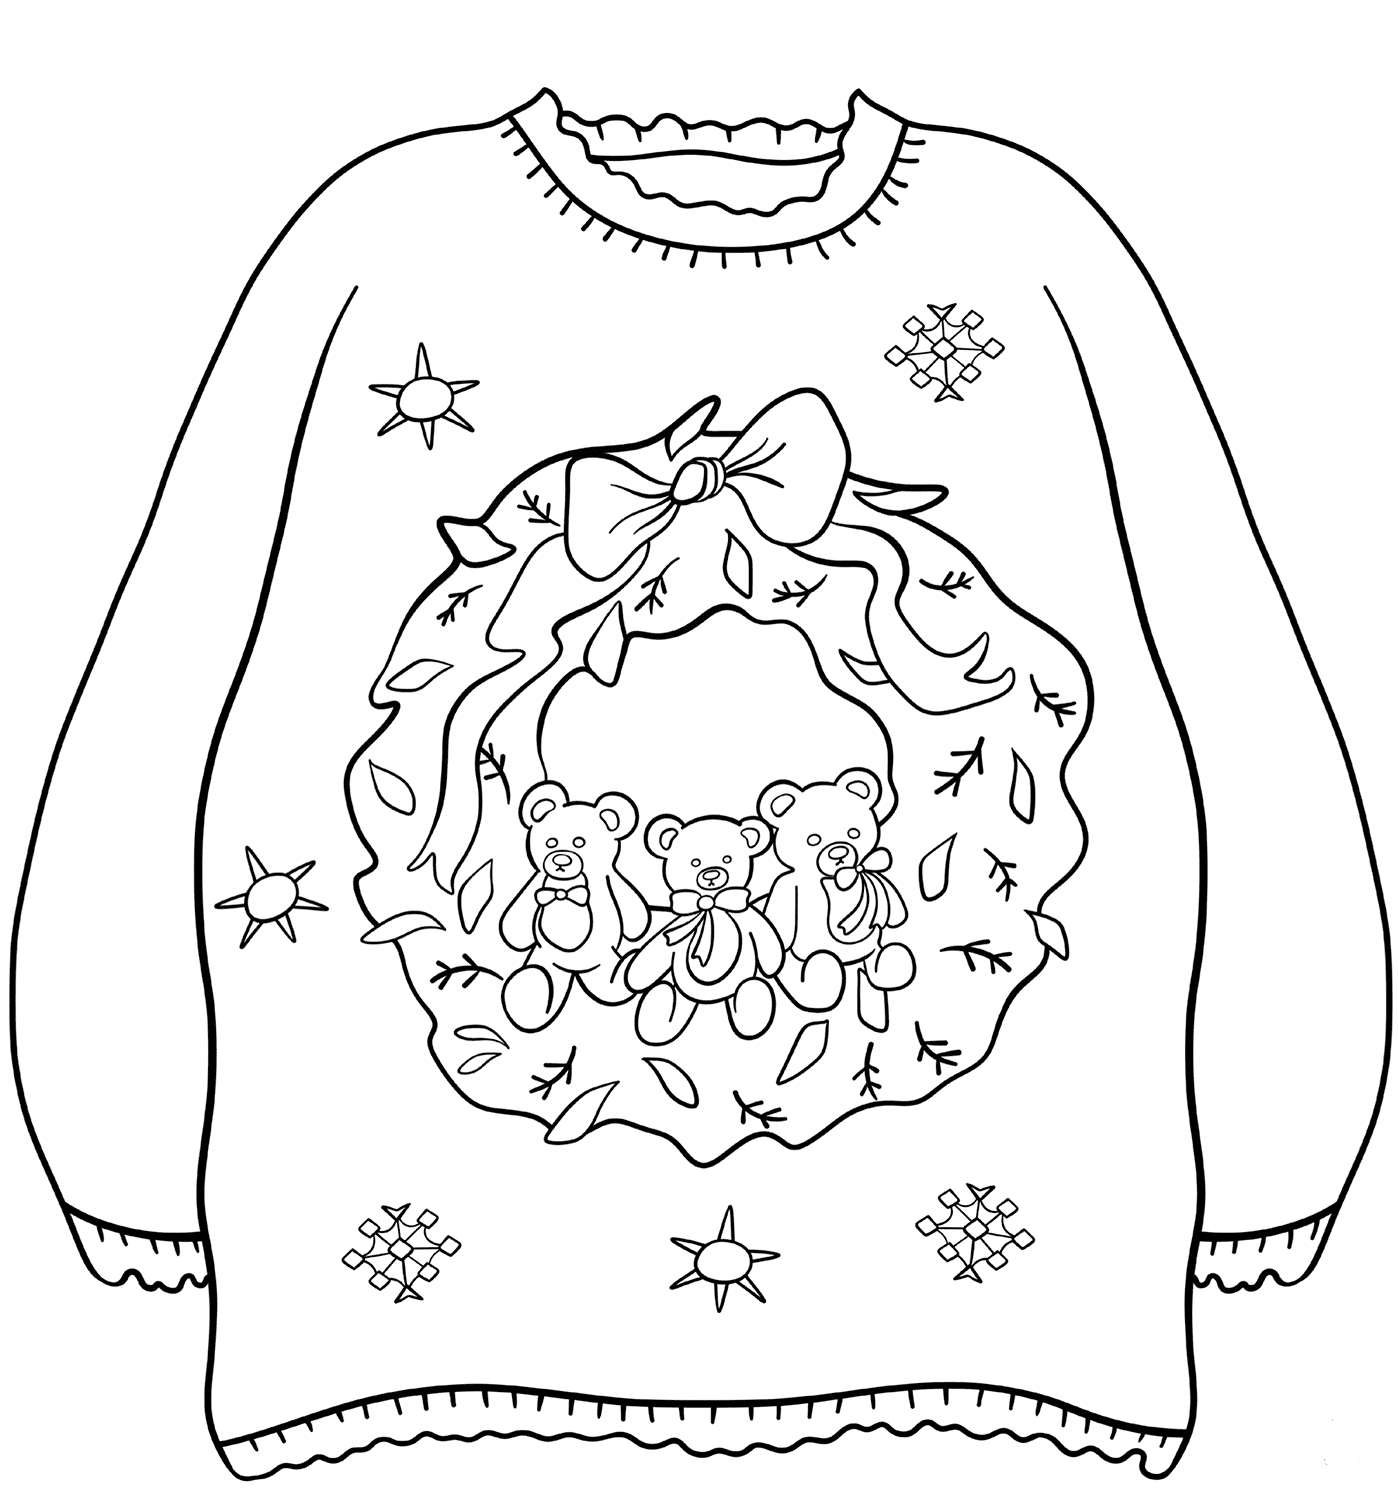 Christmas Sweater With Wreath Coloring Sheet